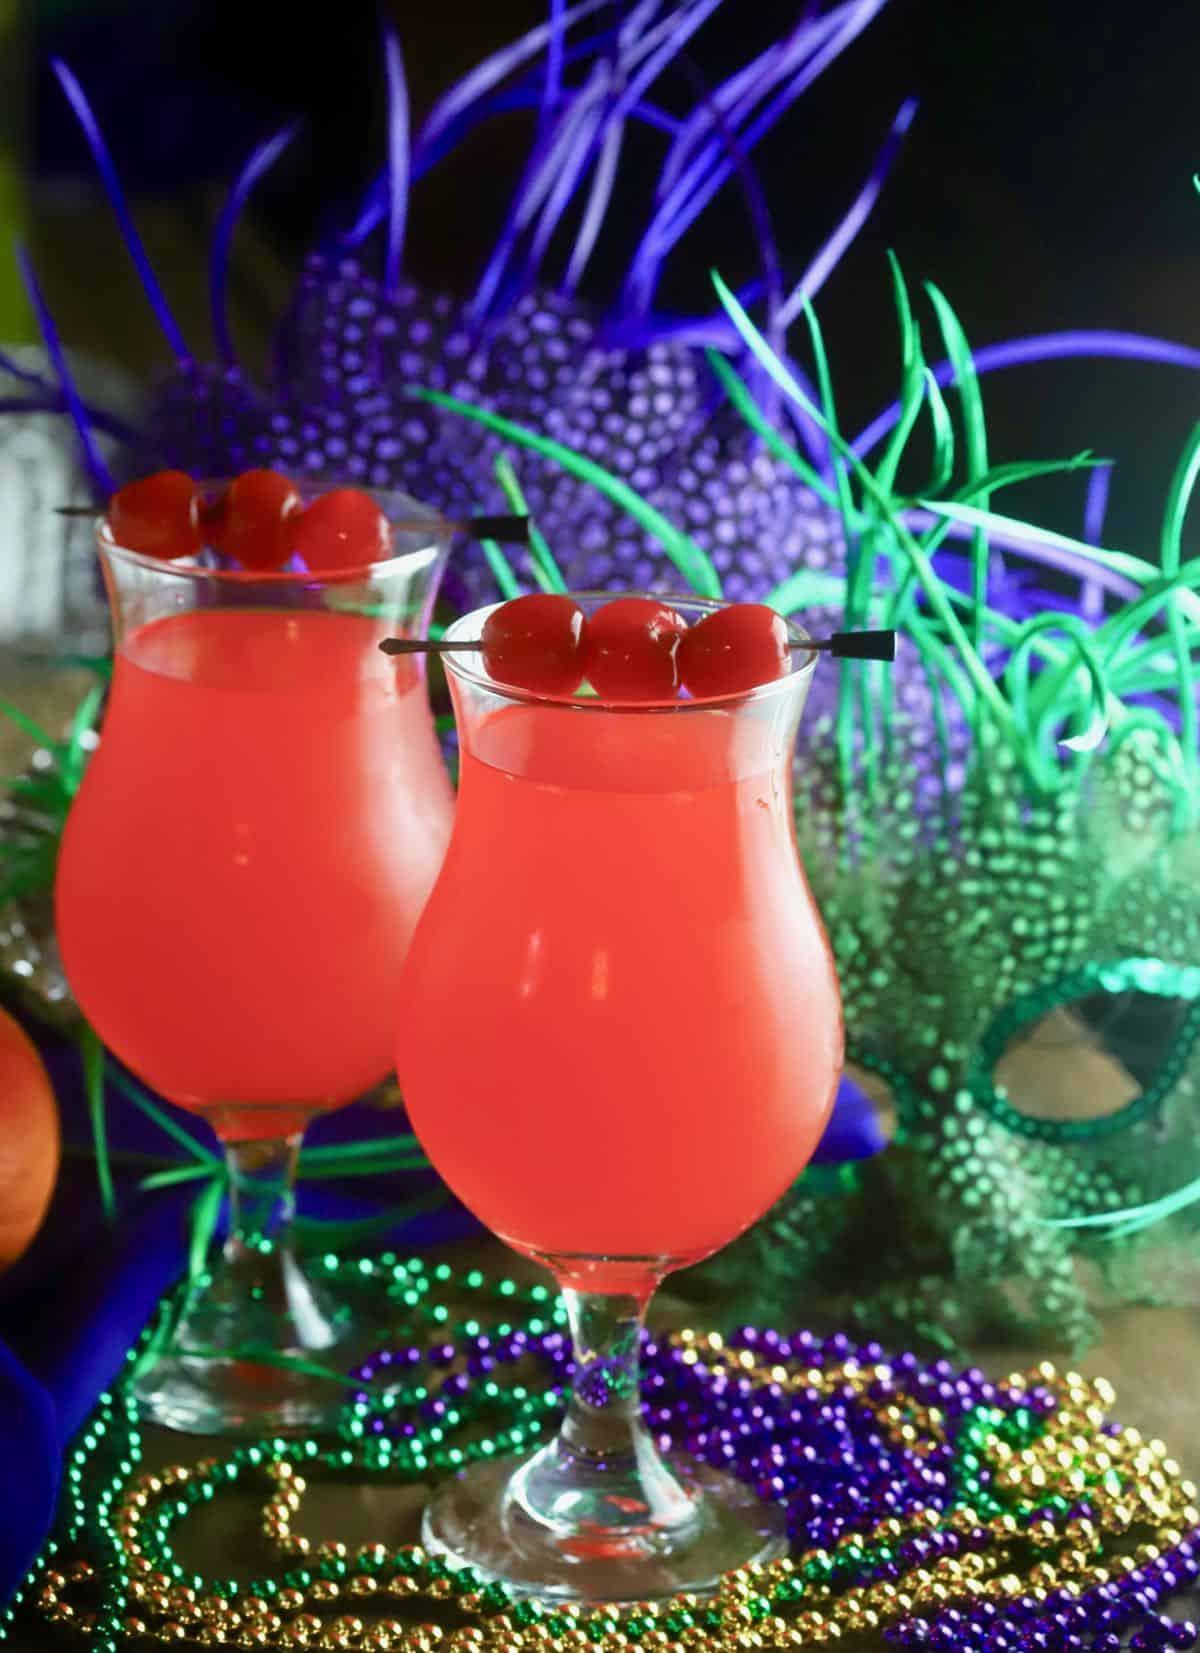 Two Hurricane cocktails on a table with Mardi Gras beads and masks.